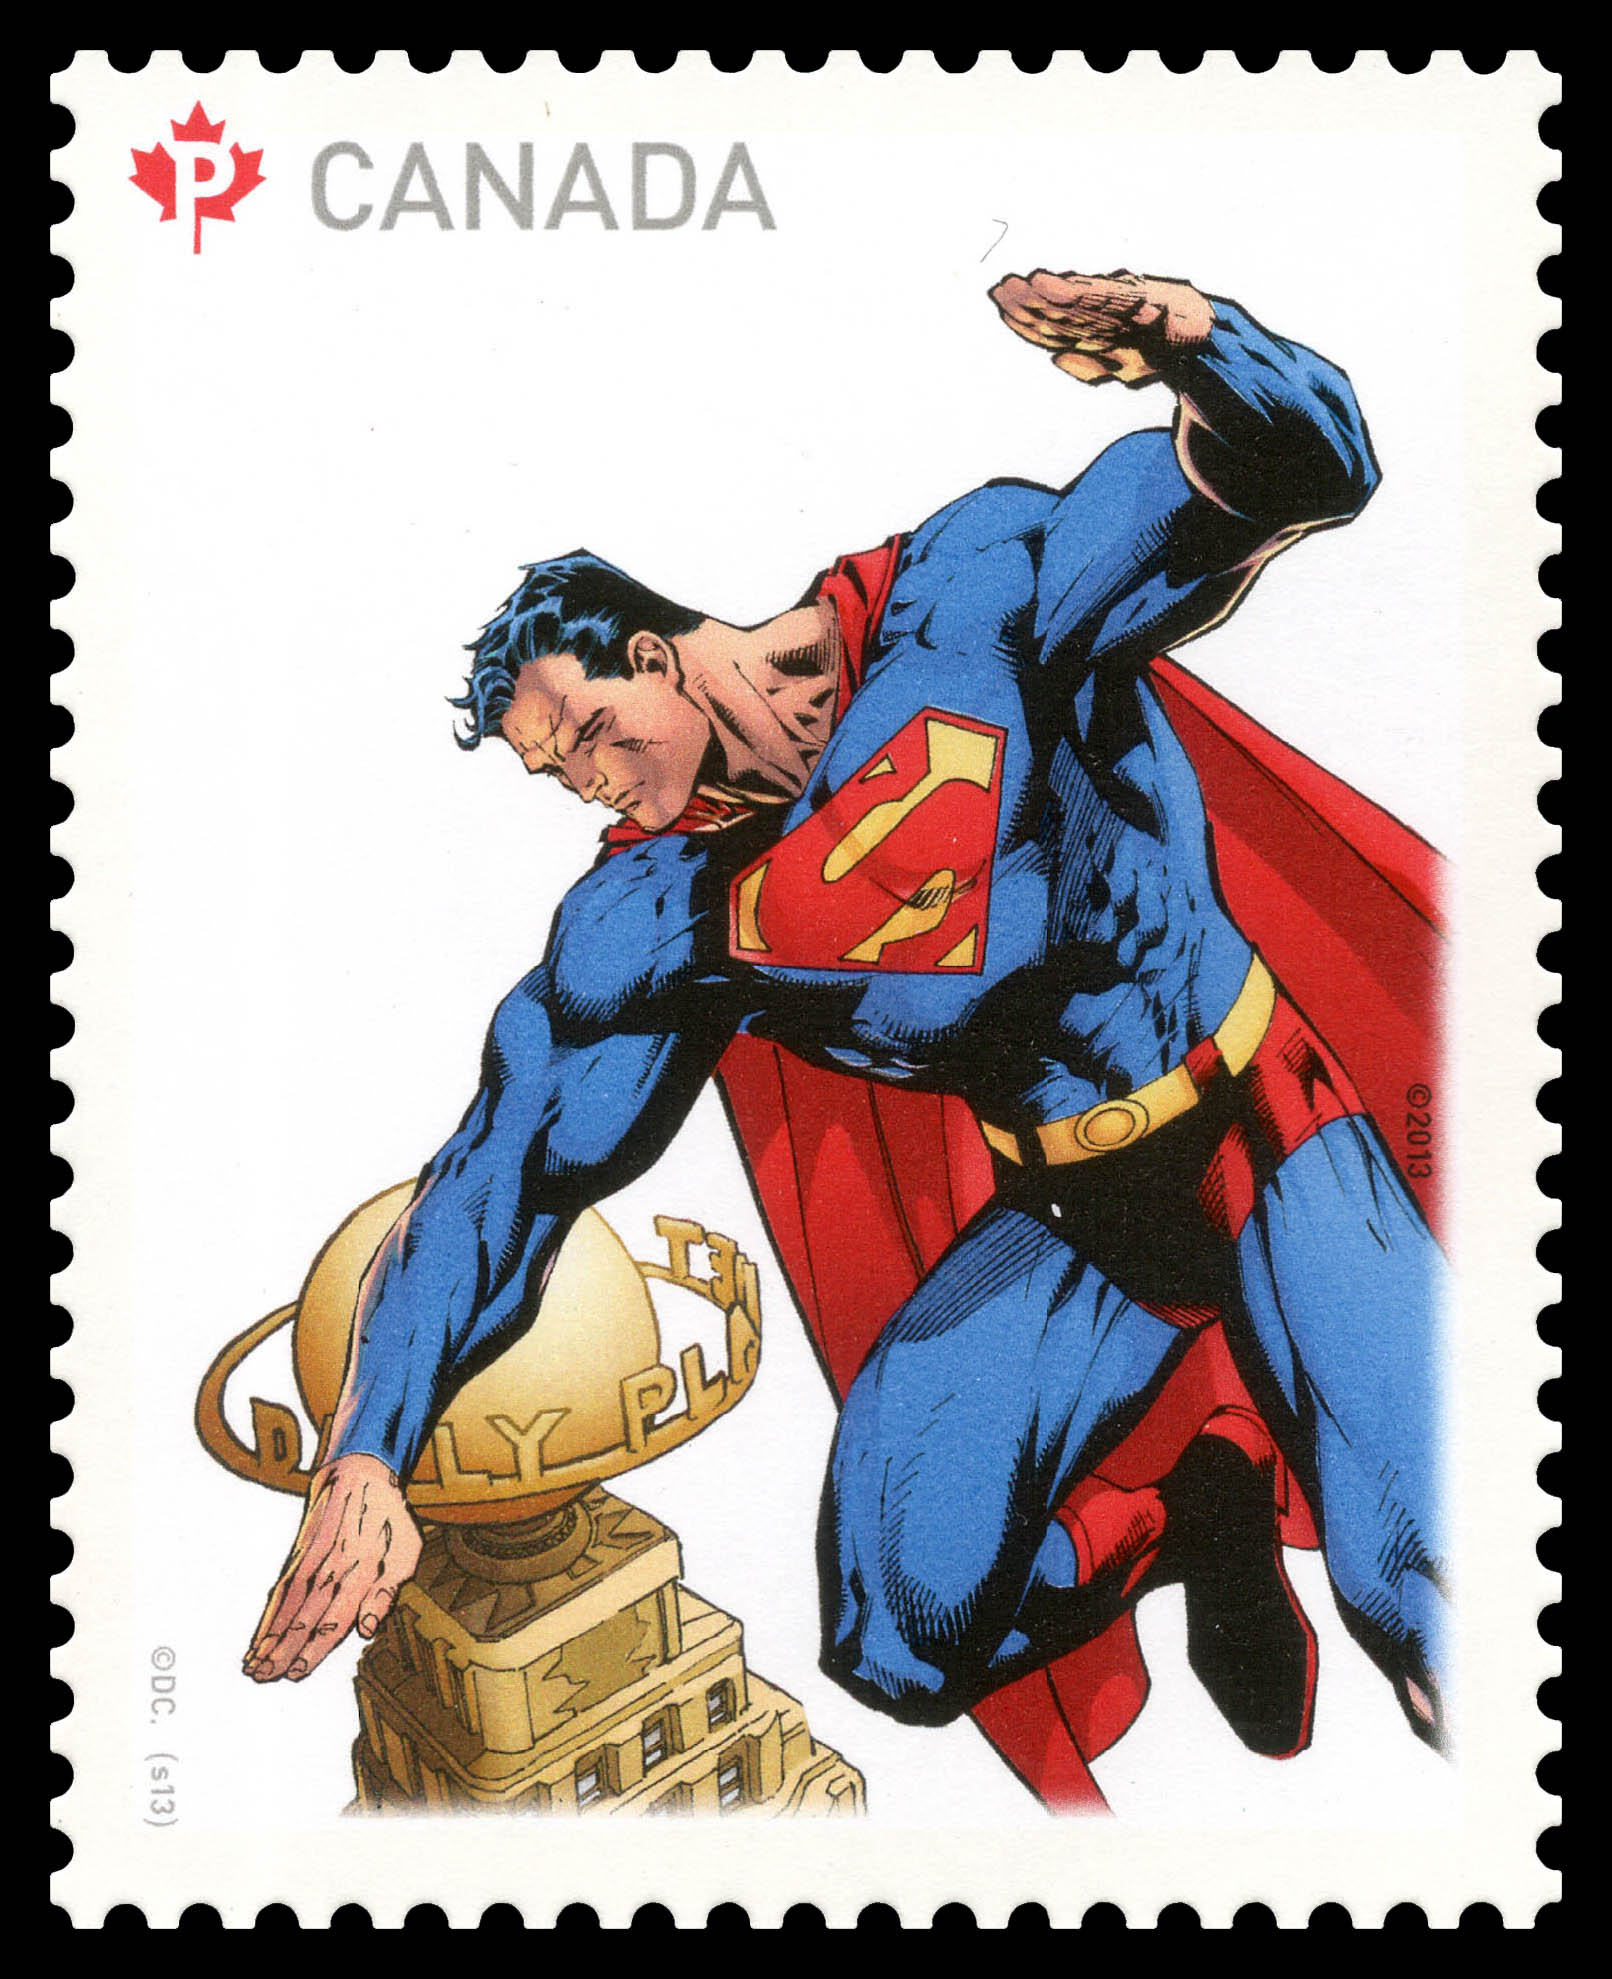 Superman and the Daily Planet Canada Postage Stamp